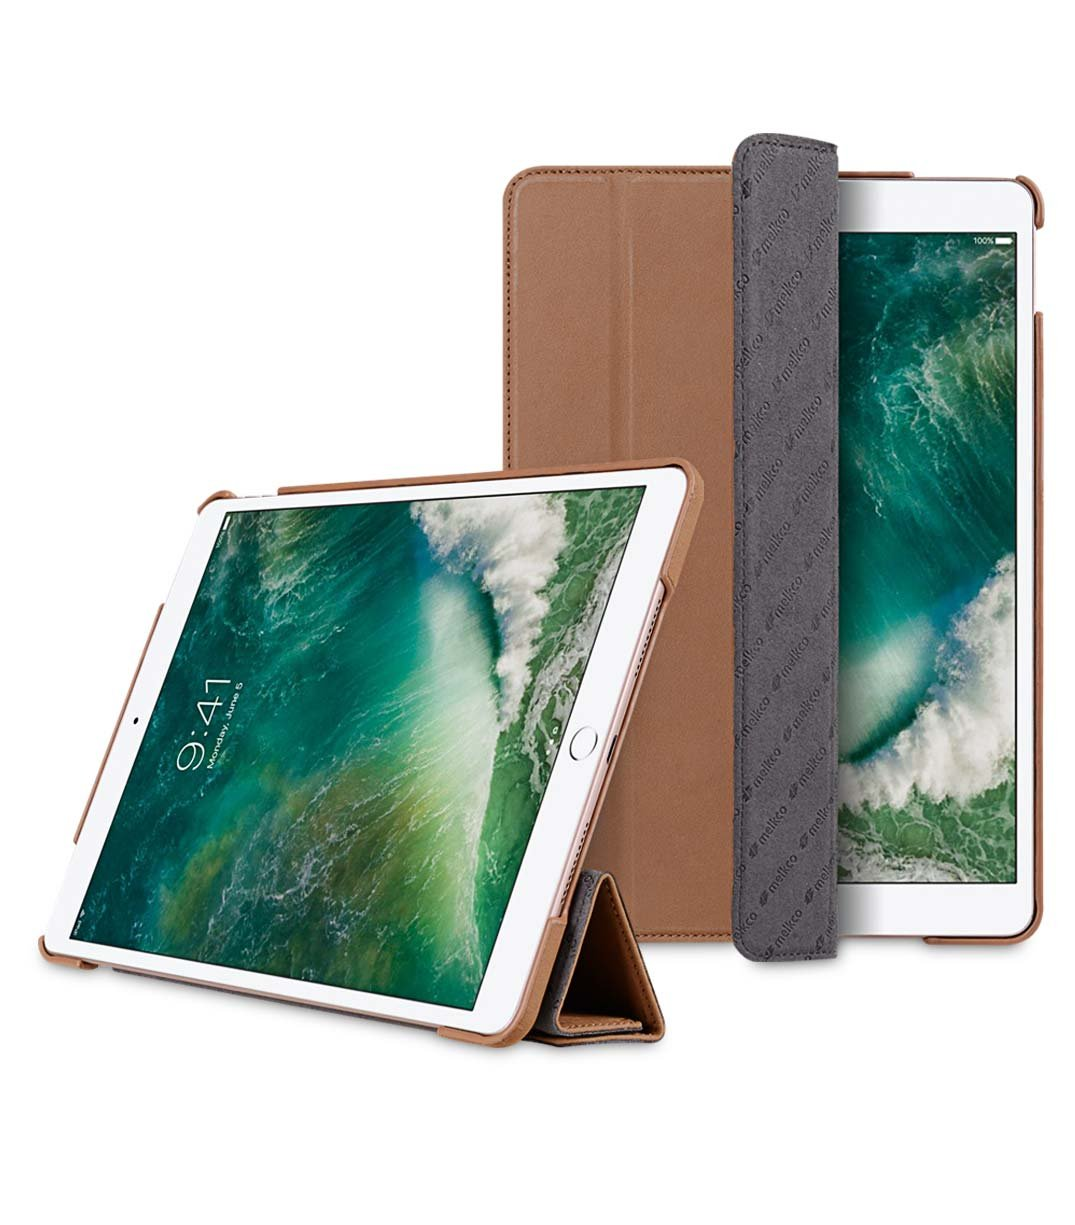 Melkco Premium Leather Case for Apple iPad Pro 10.5'' - Slimme Cover Type - With Sleep Mode Function ( Classic Vintage Brown ) - MEL-MA15SC1VBSD